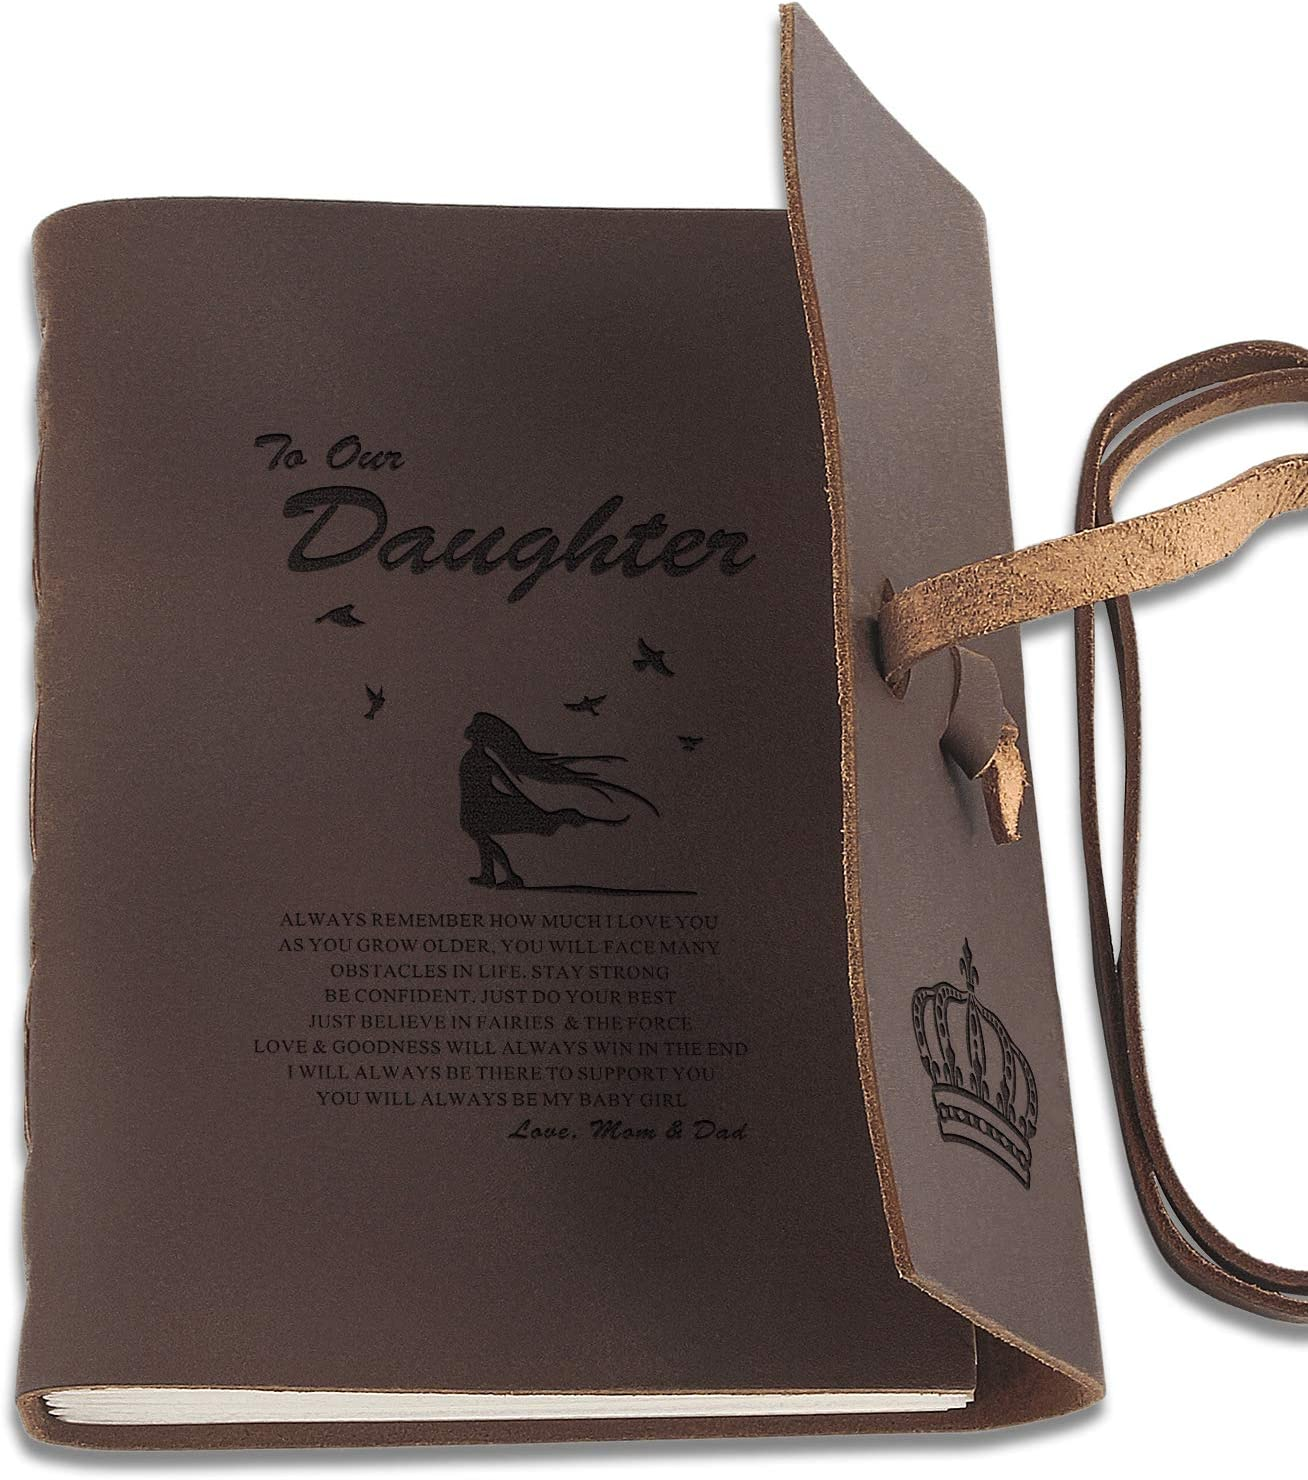 Custom Leather Journal Personalized Rustic Handmade Vintage Leather Bound Journals for Women Girls Unlined Paper 7x5 Inches Diary Notepad Gift Writing Notebooks Sketchbook Perfect Gifts for Daughter